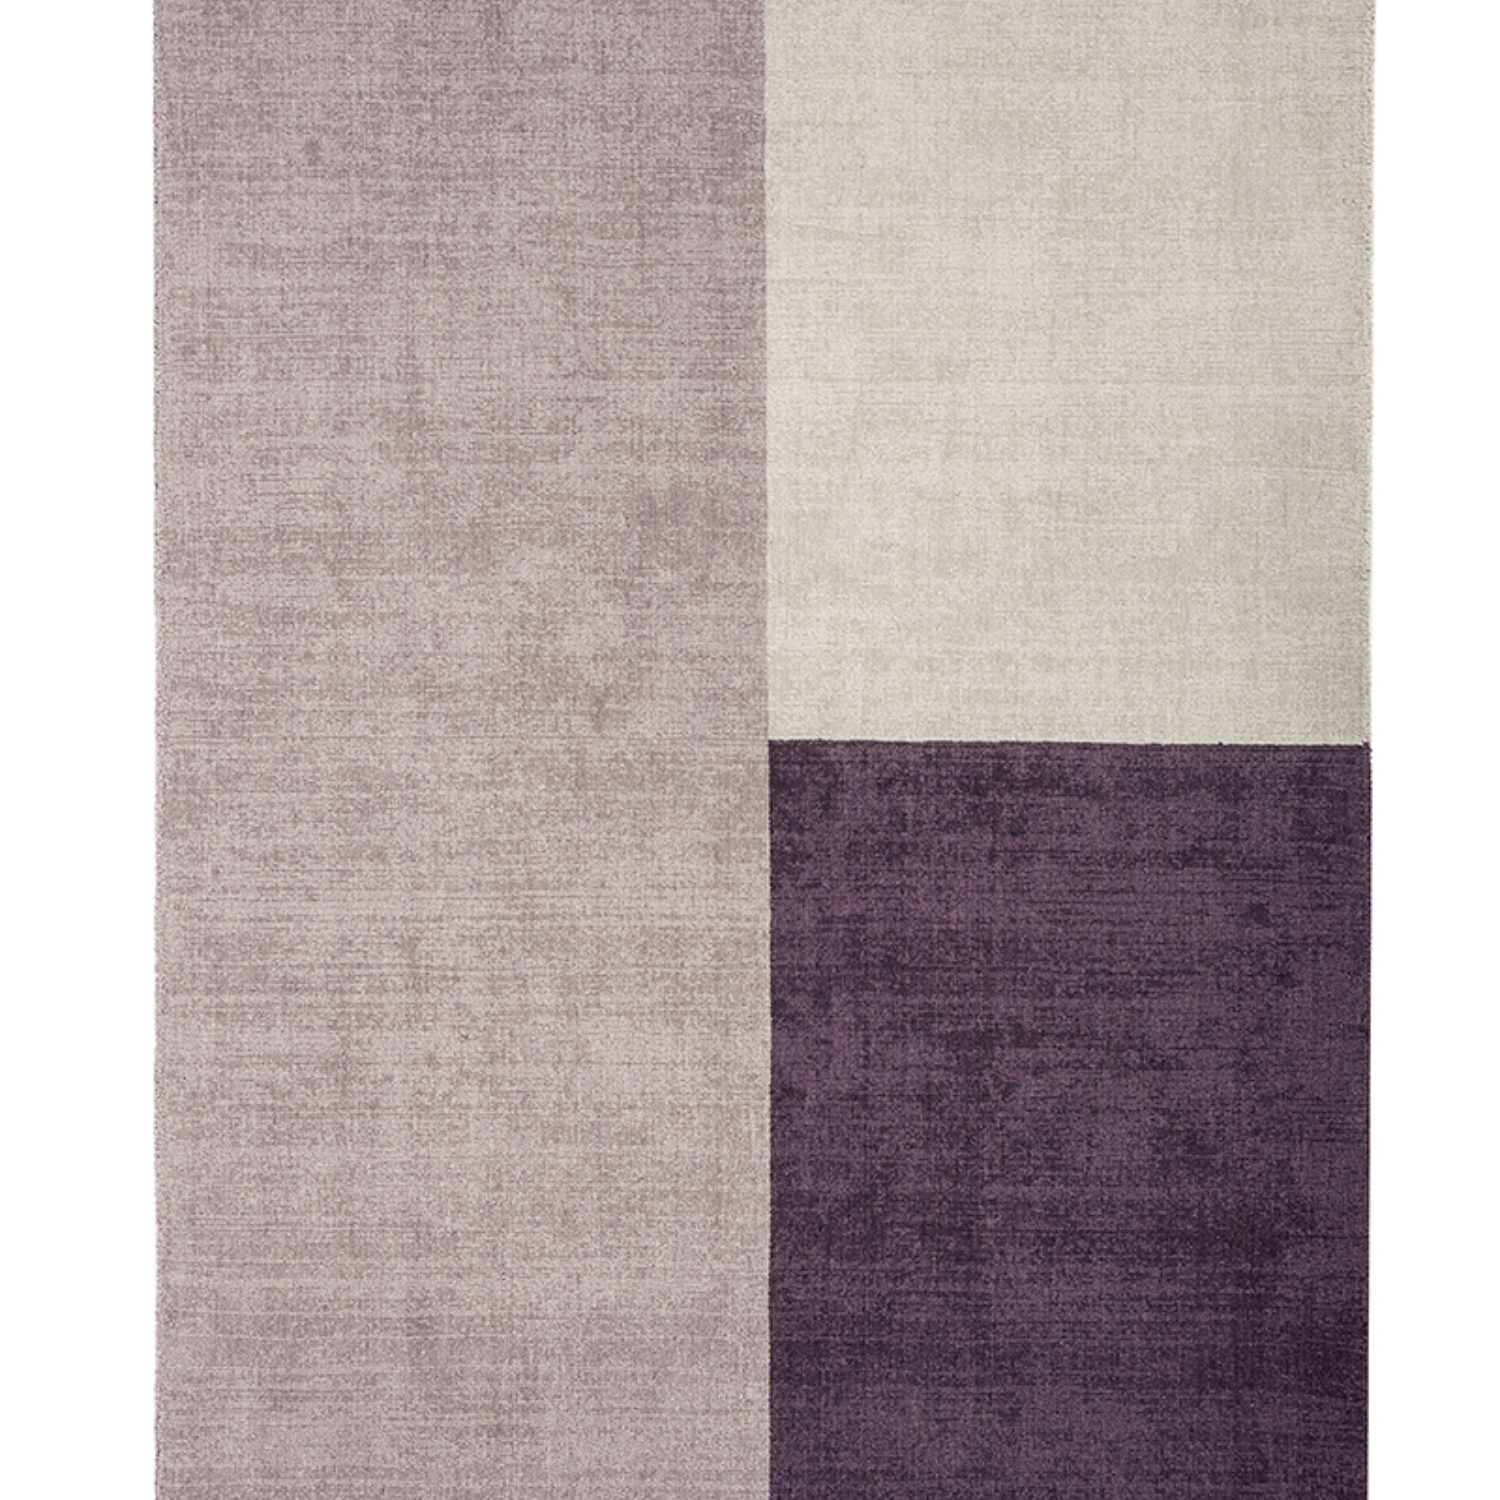 Hand woven wool rug in bold blocks of colours.